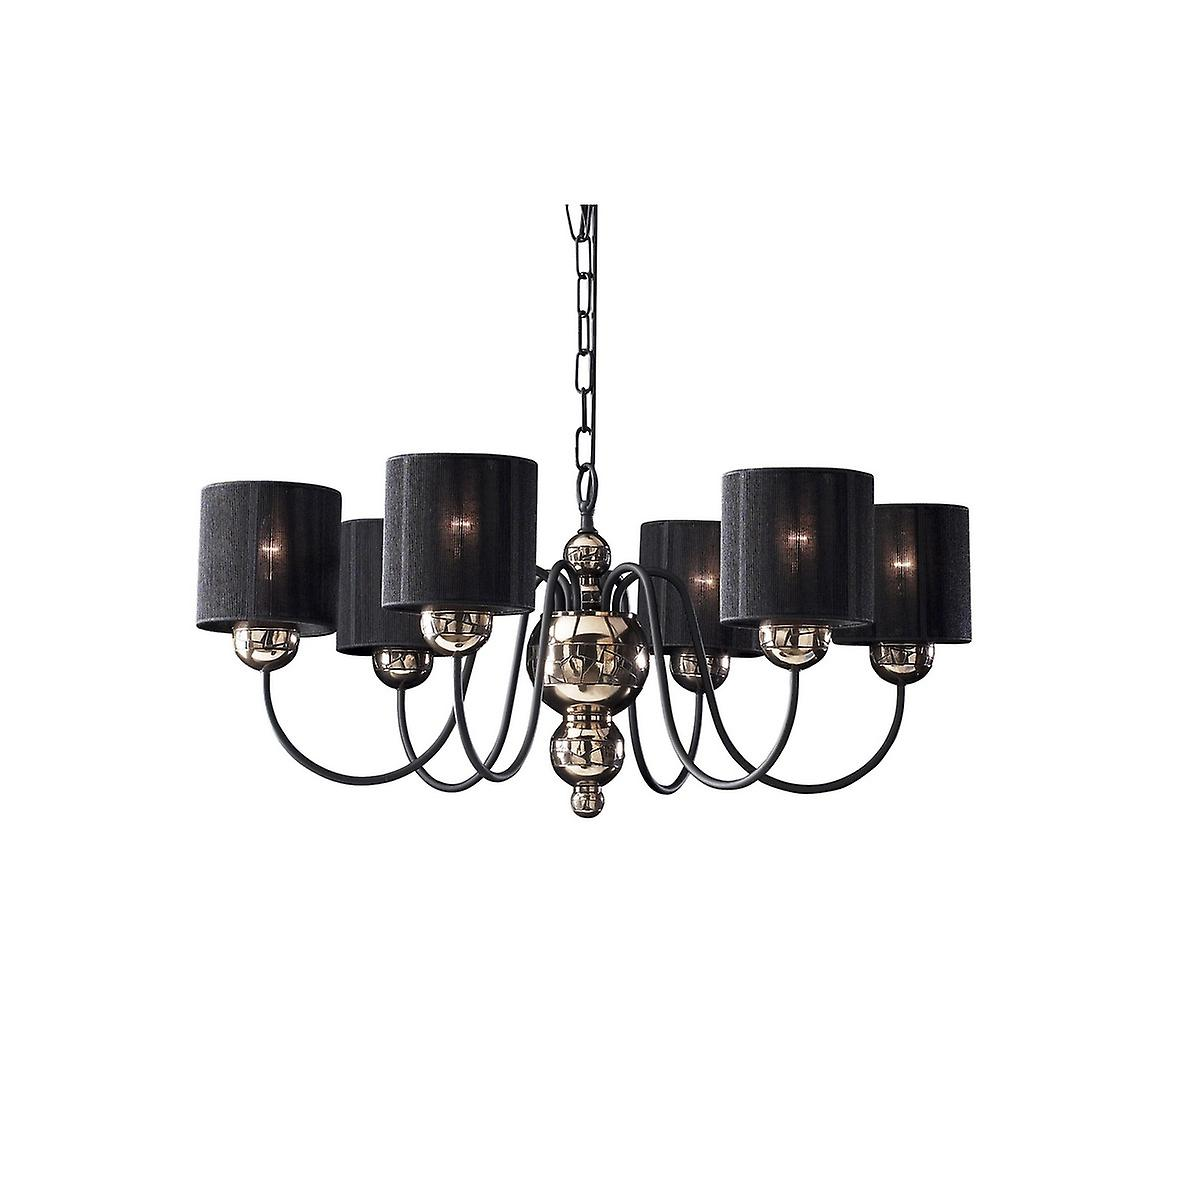 David Hunt GAR0663 Garbo 6 Light Pendant In A Bronze Finish With Black String Shades